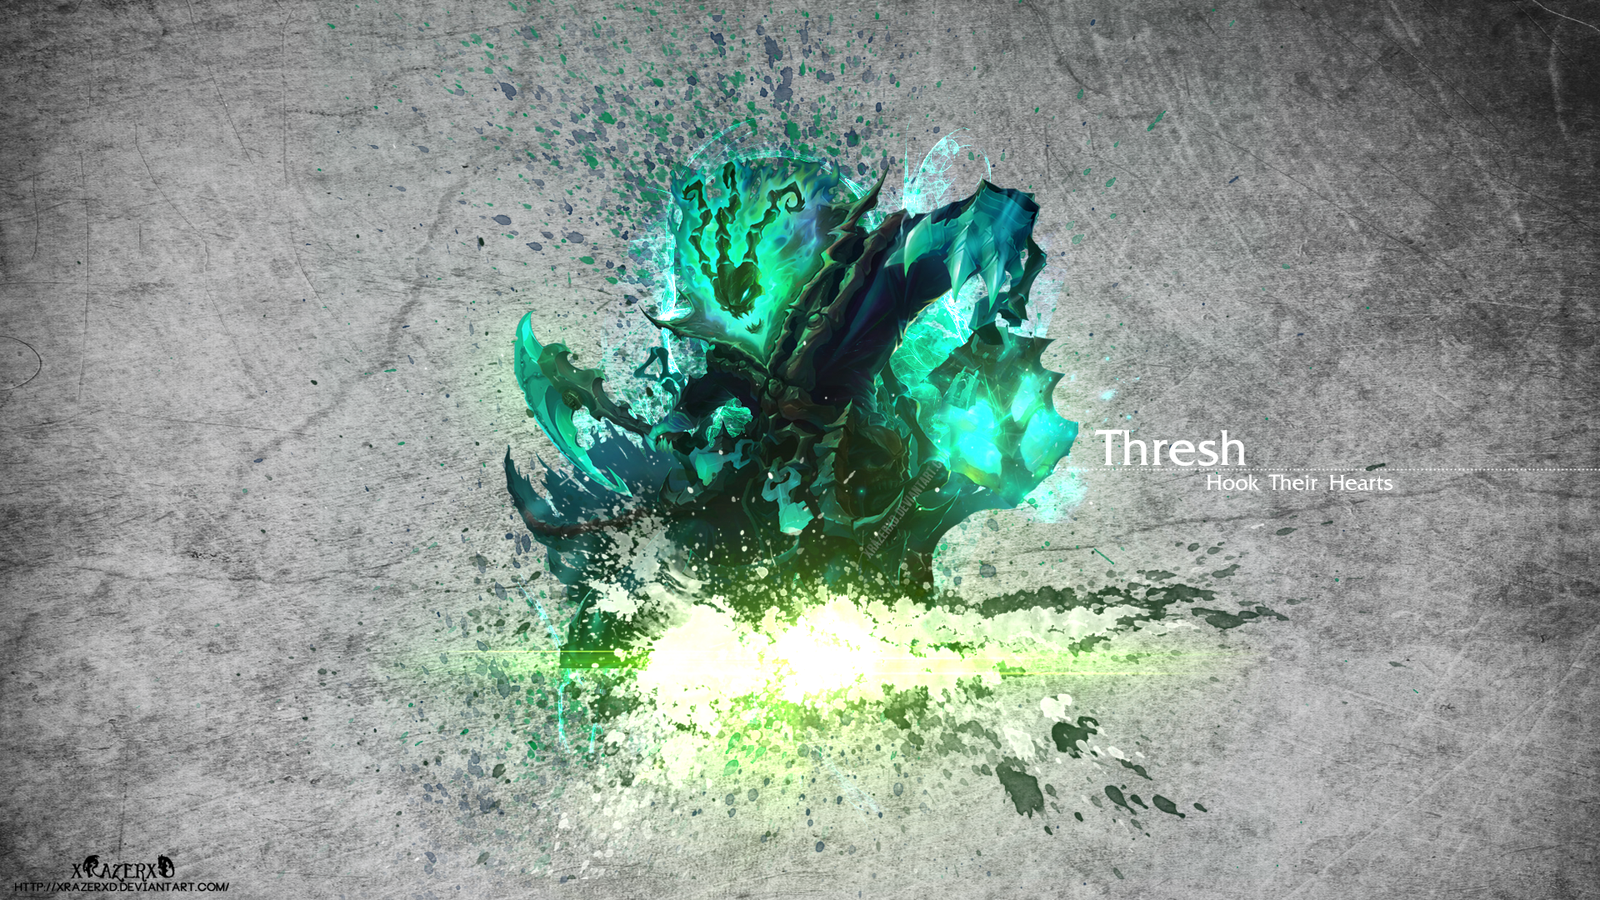 league of legends thresh guide